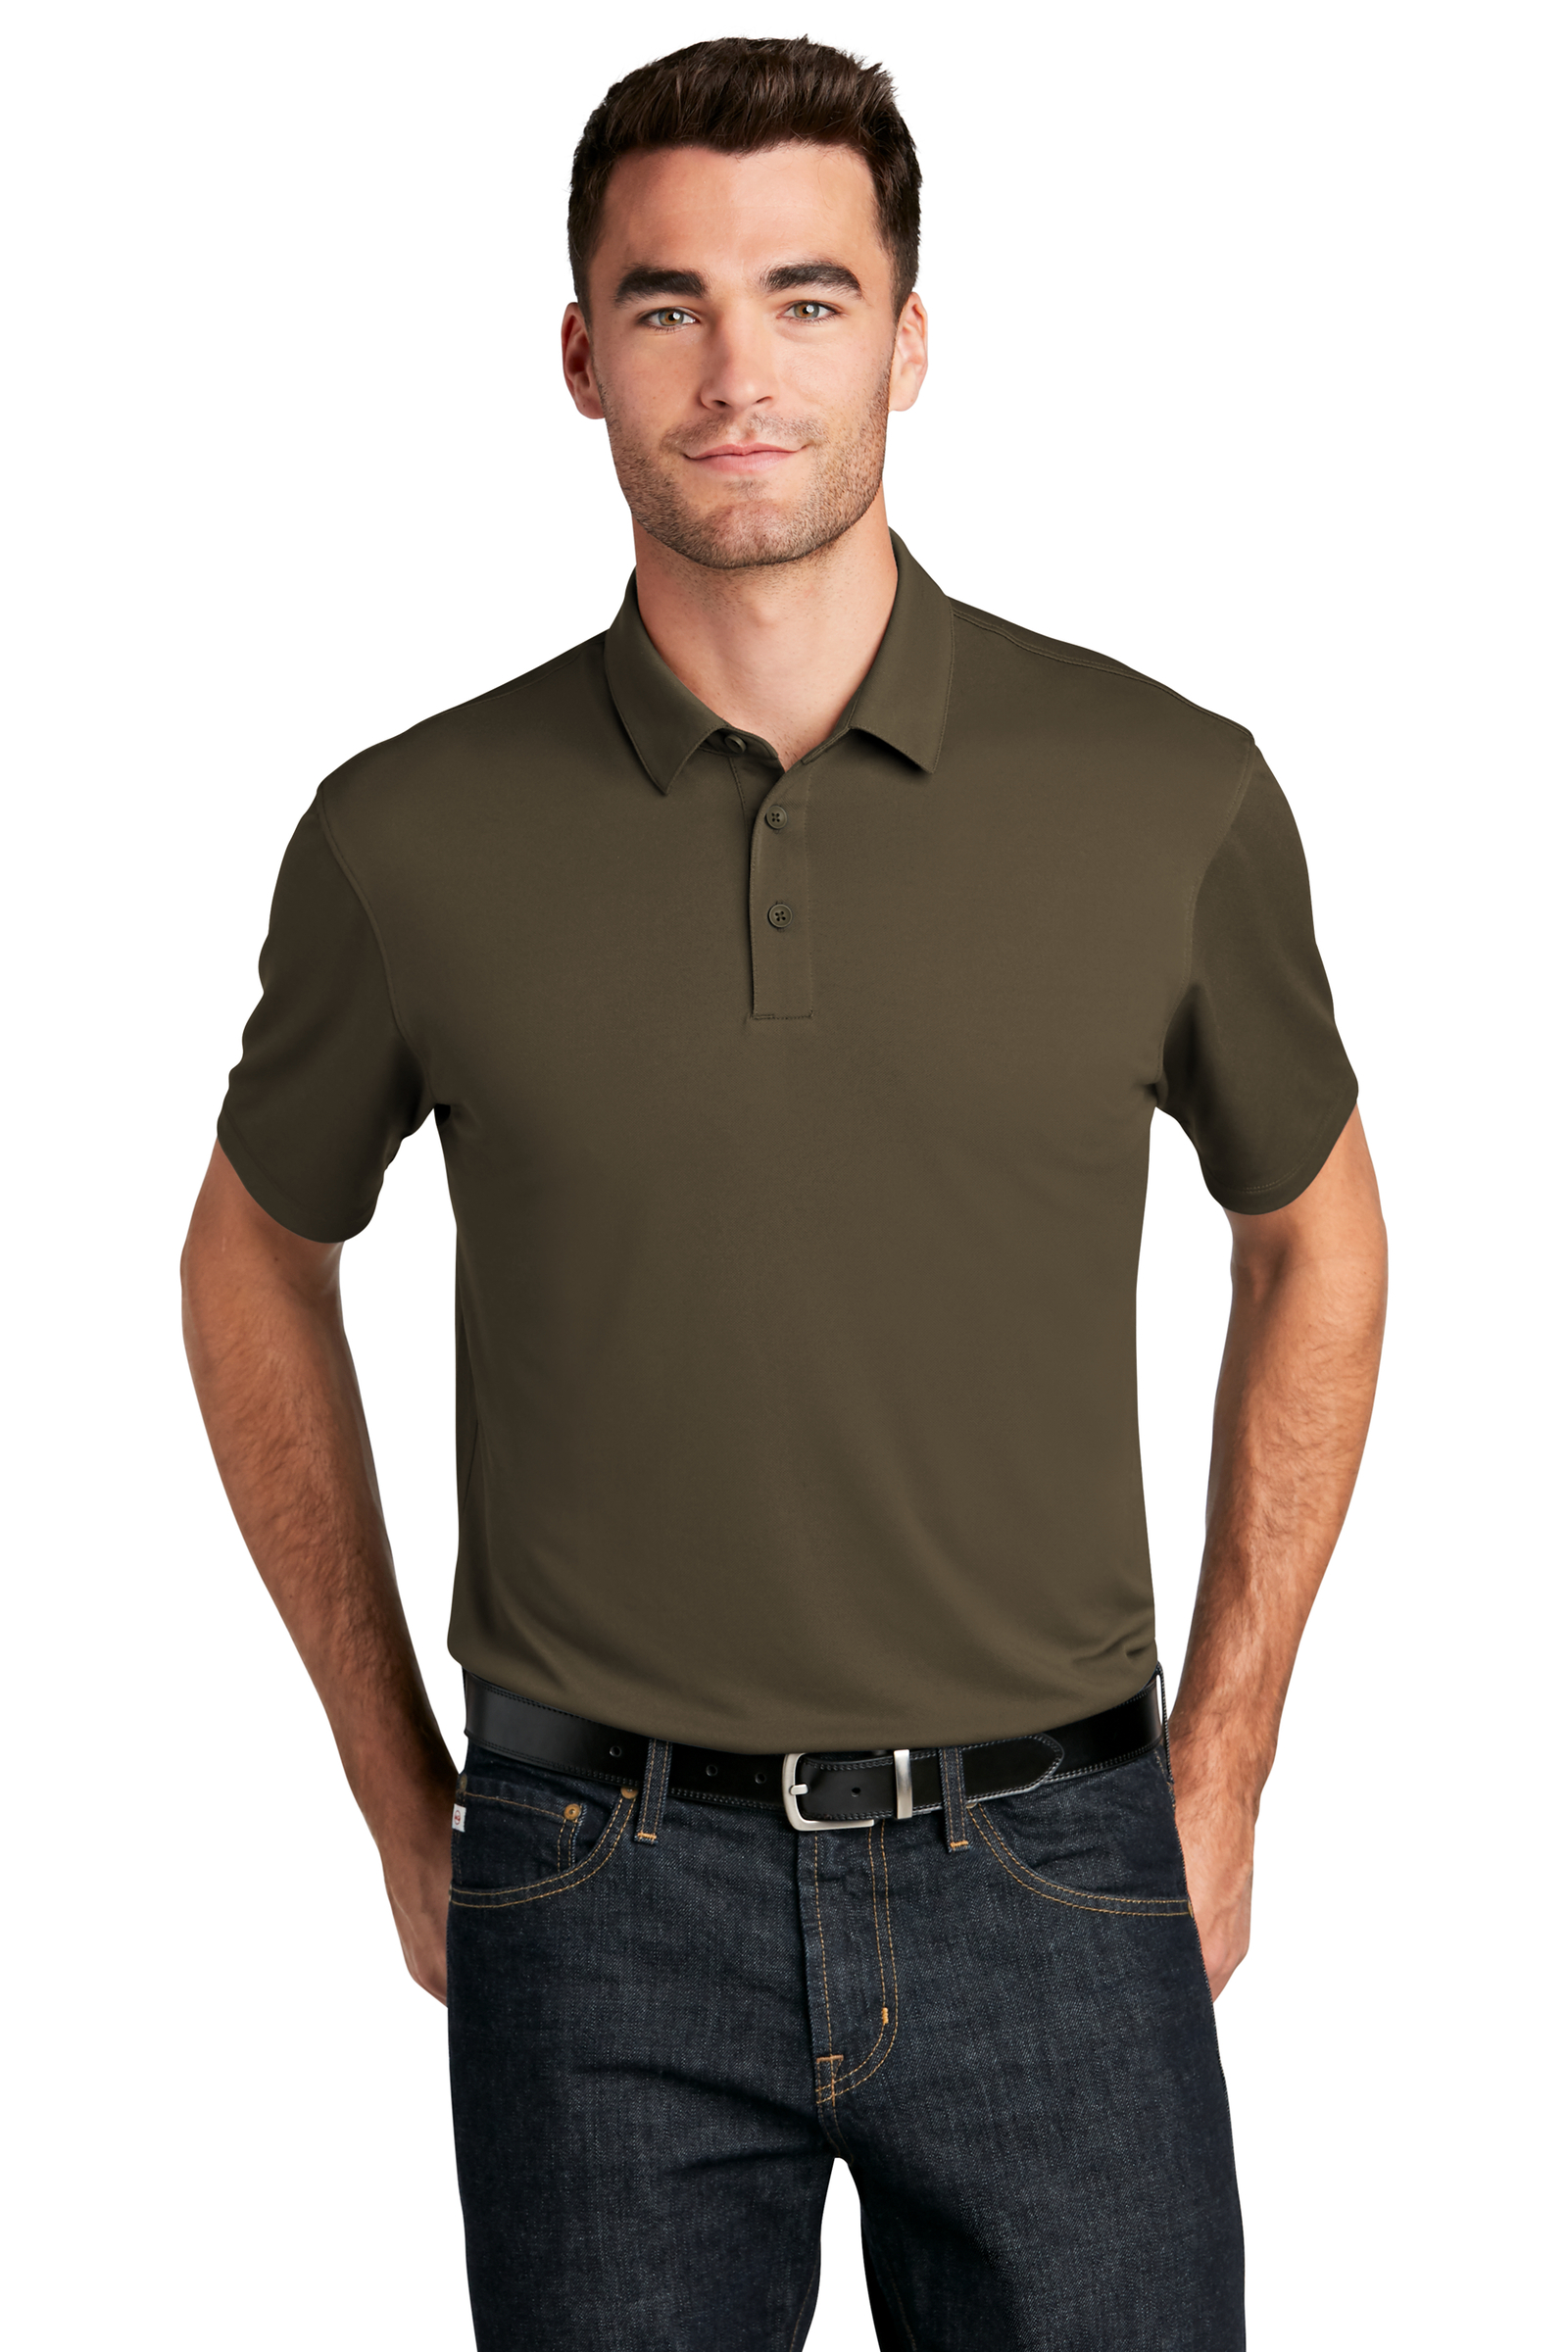 Port Authority Embroidered Men's UV Choice Pique Polo